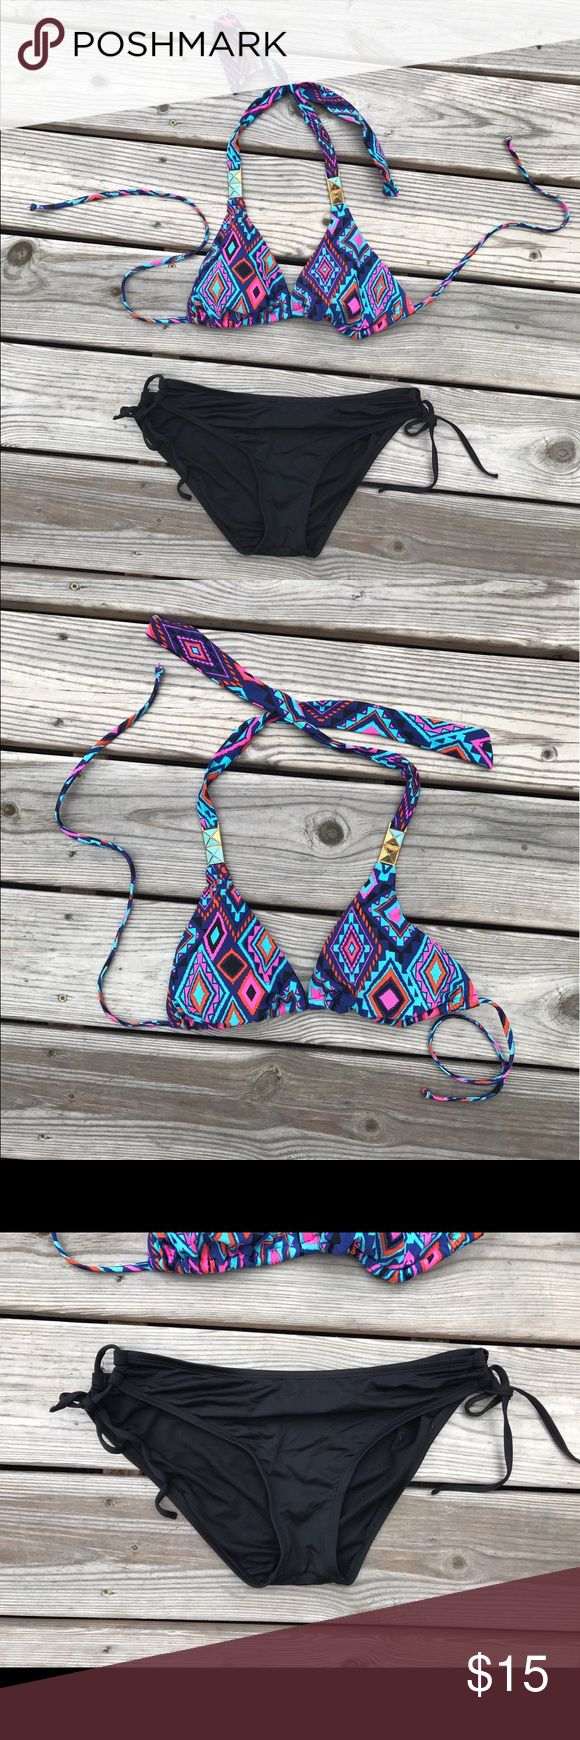 Aztec Bikini top & black bottoms Great condition. No snags, stains, or piling. Can be sold separately or matched with a different bikini from my listings! Mossimo Supply Co Swim Bikinis